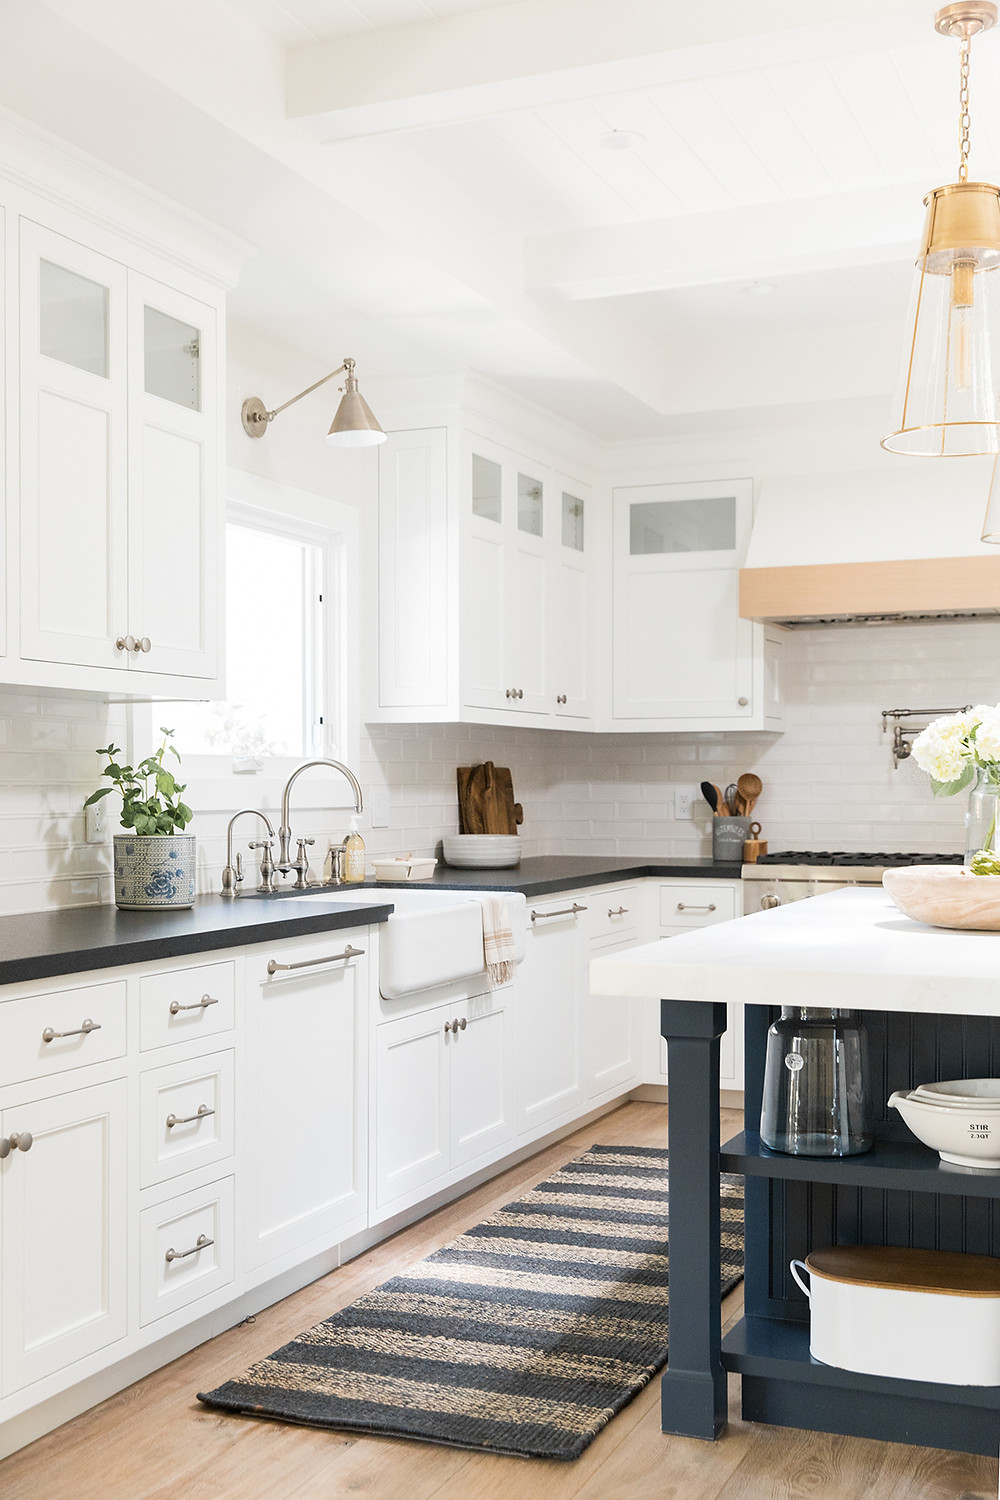 20 White Kitchen Design Ideas white cabinets in kitchen with striped runner in front of the sink